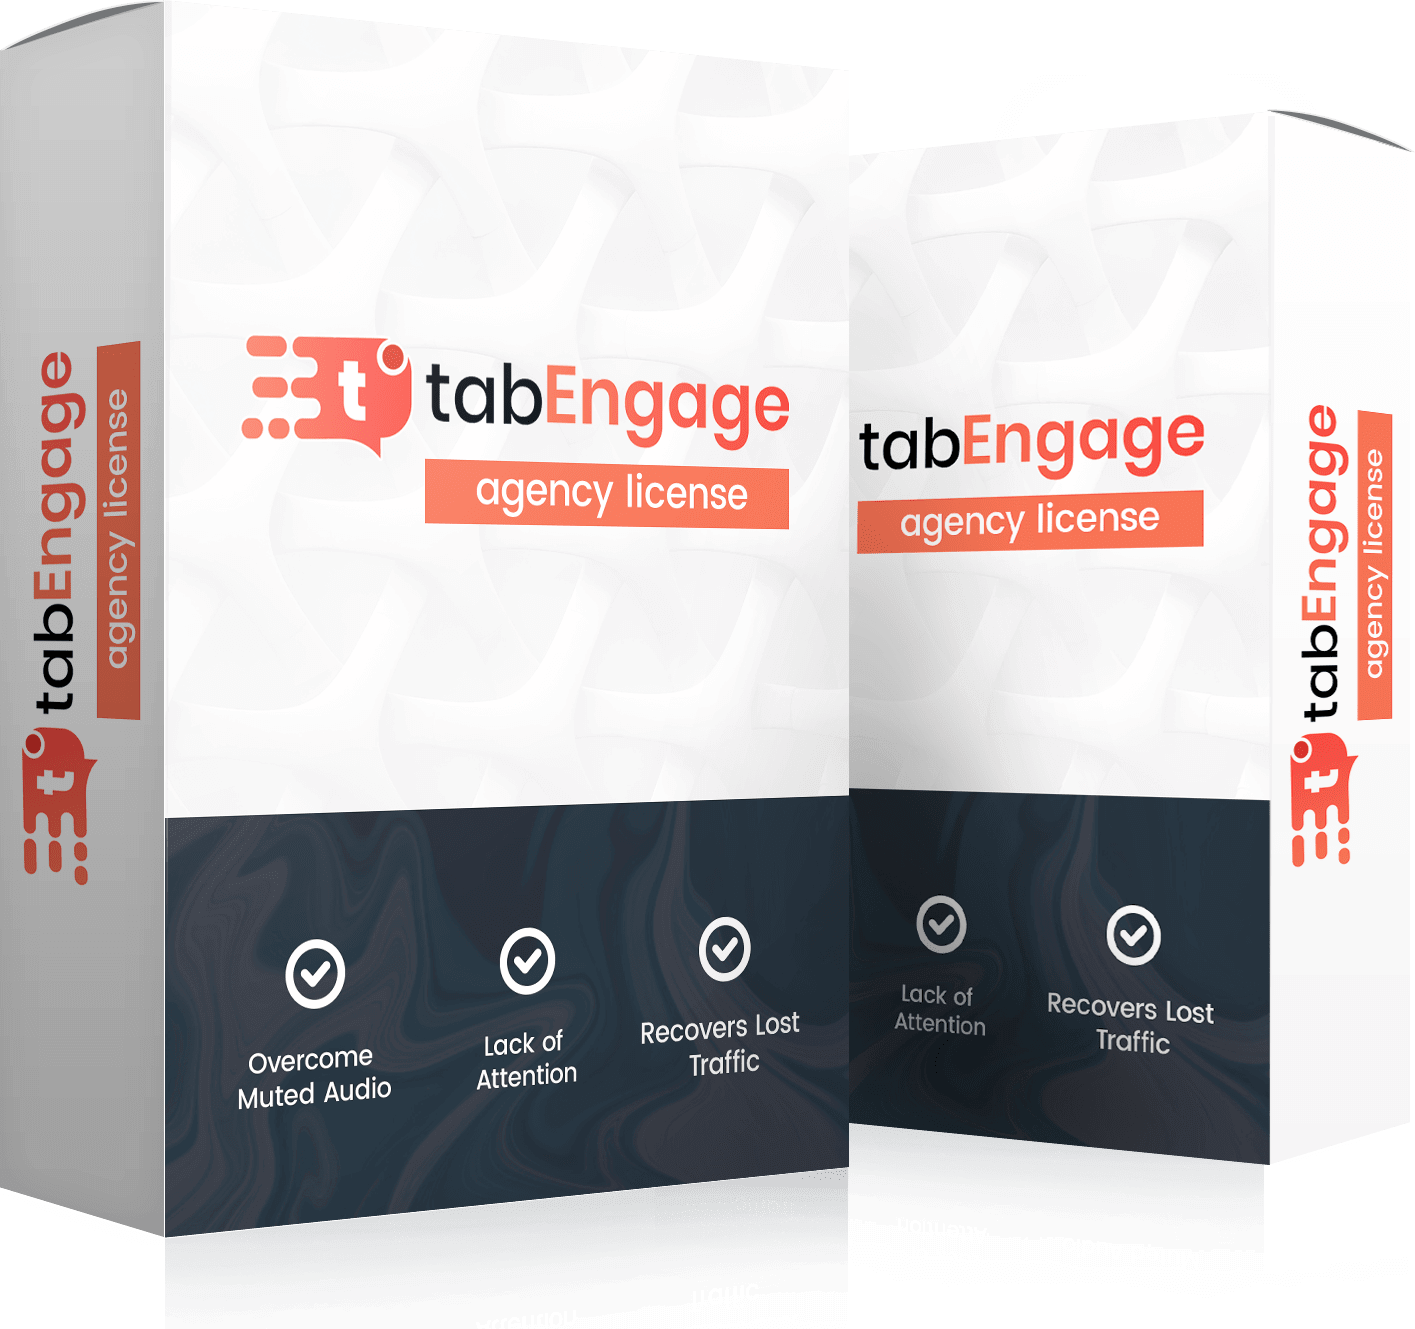 TabEngage-Review-Oto1